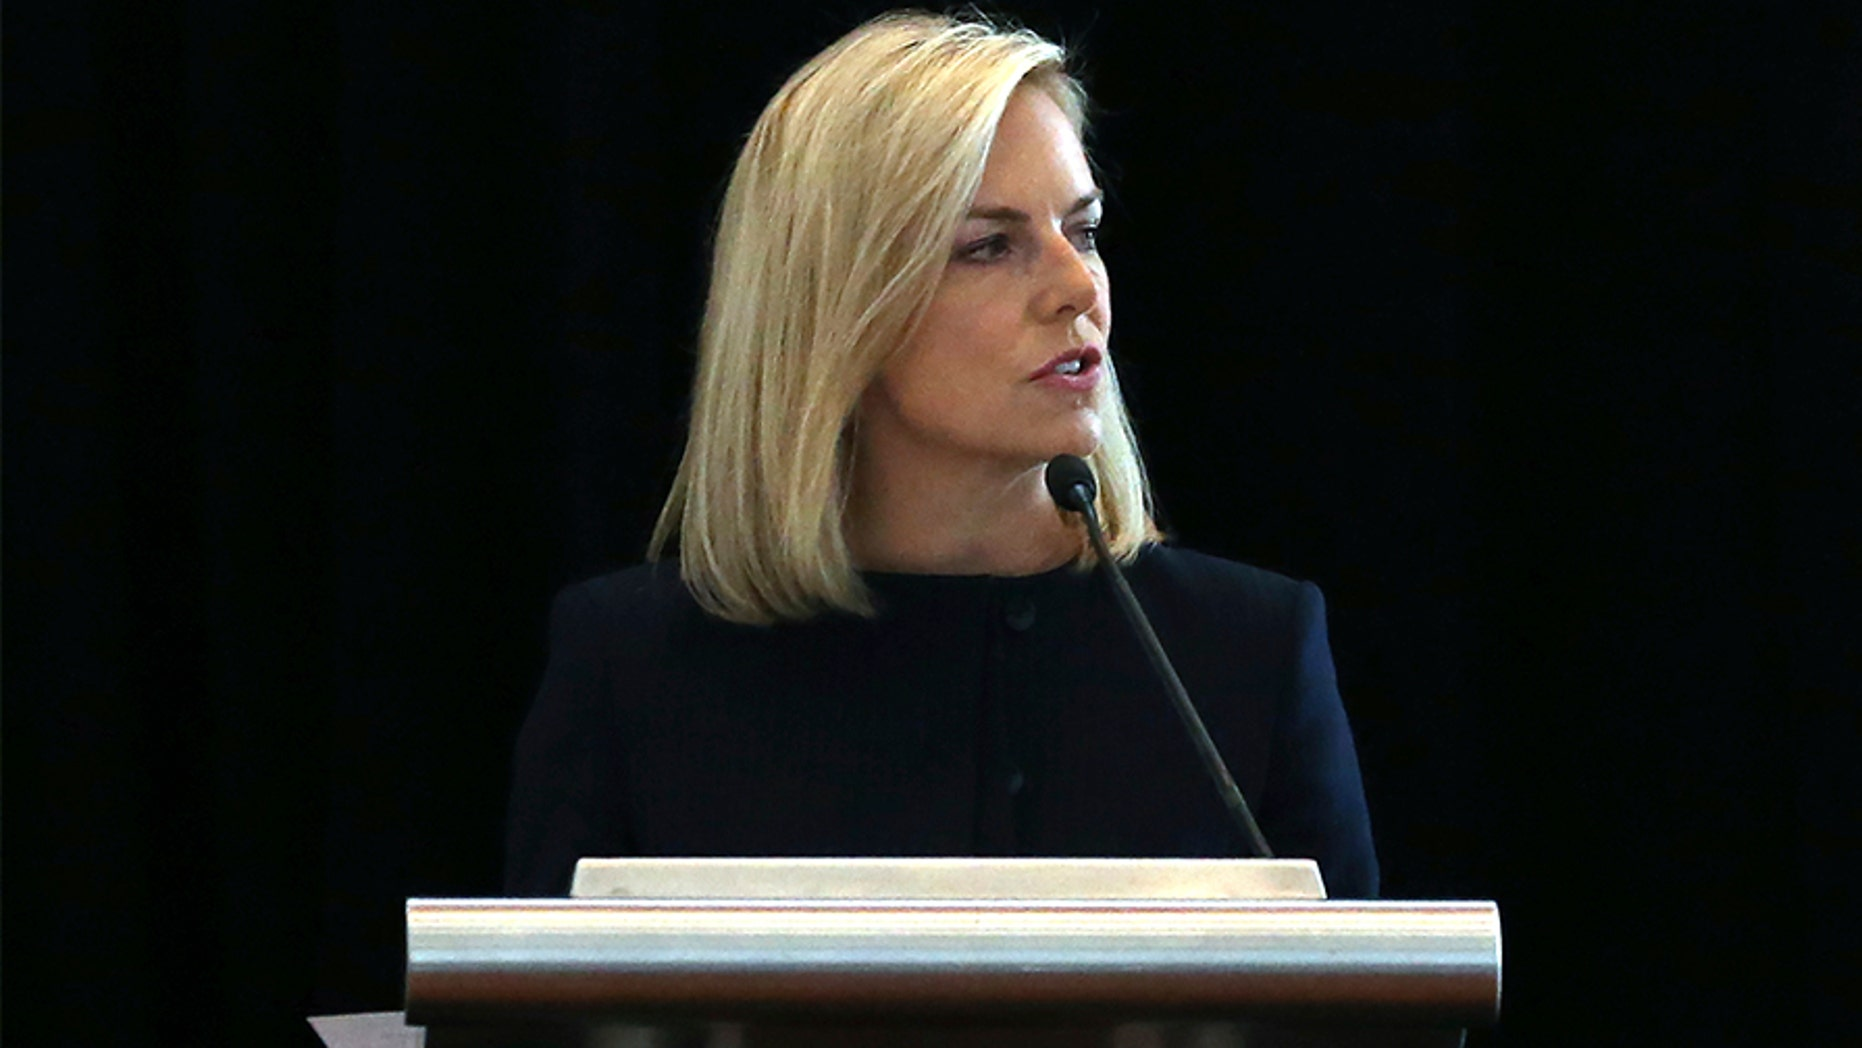 """U.S. Department of Homeland Security Secretary Kirstjen Nielsen addresses a convention of state secretaries of state on Saturday in Philadelphia. Nielsen told the gathering that there are no signs that Russia is targeting this year's midterm elections on the same """"scale or scope"""" it targeted the 2016 presidential election."""